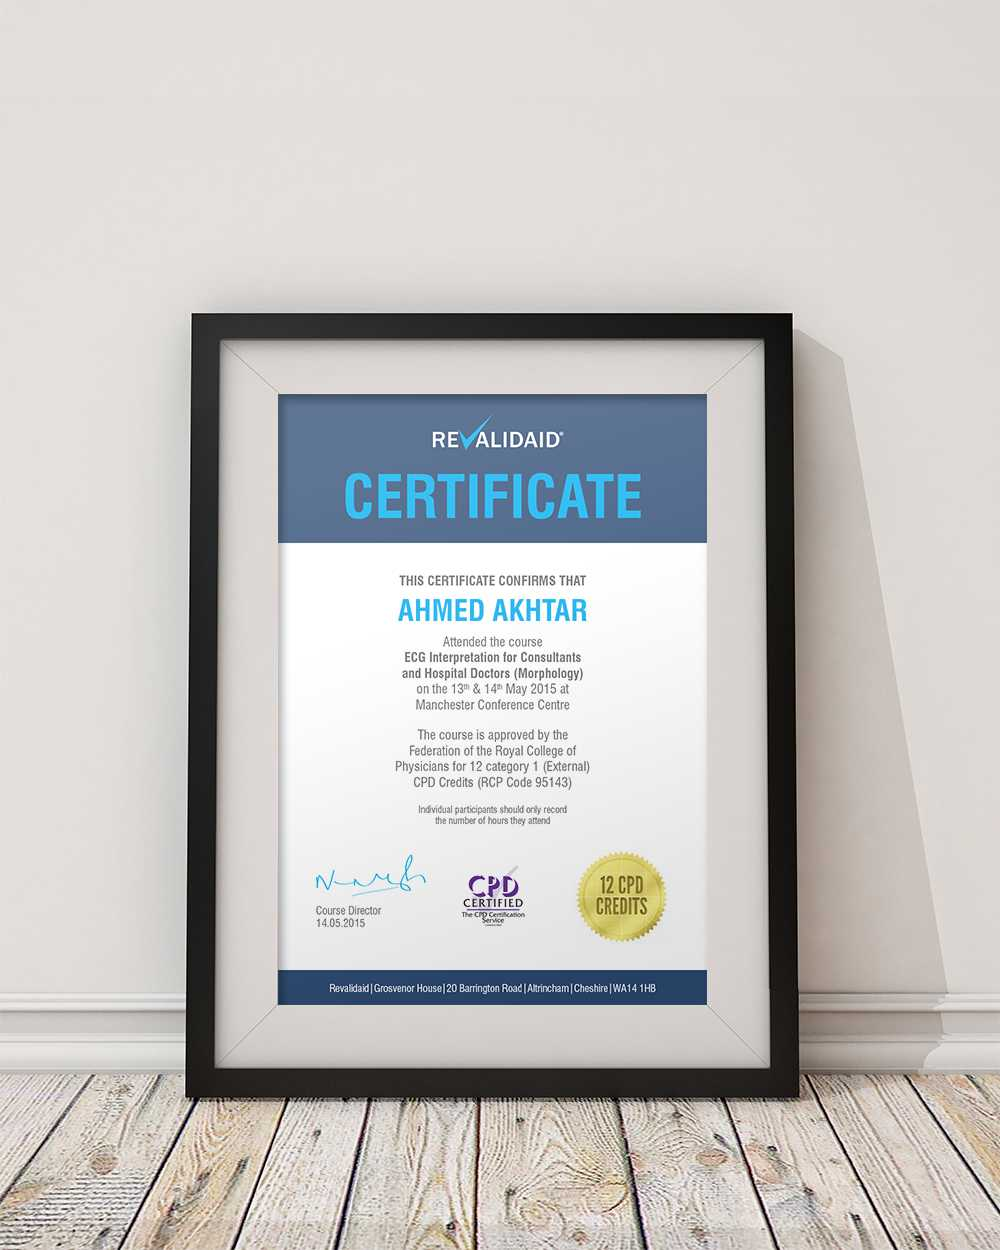 Certificate-design-Glasgow-Edinburgh-West-Lothian-04.jpg